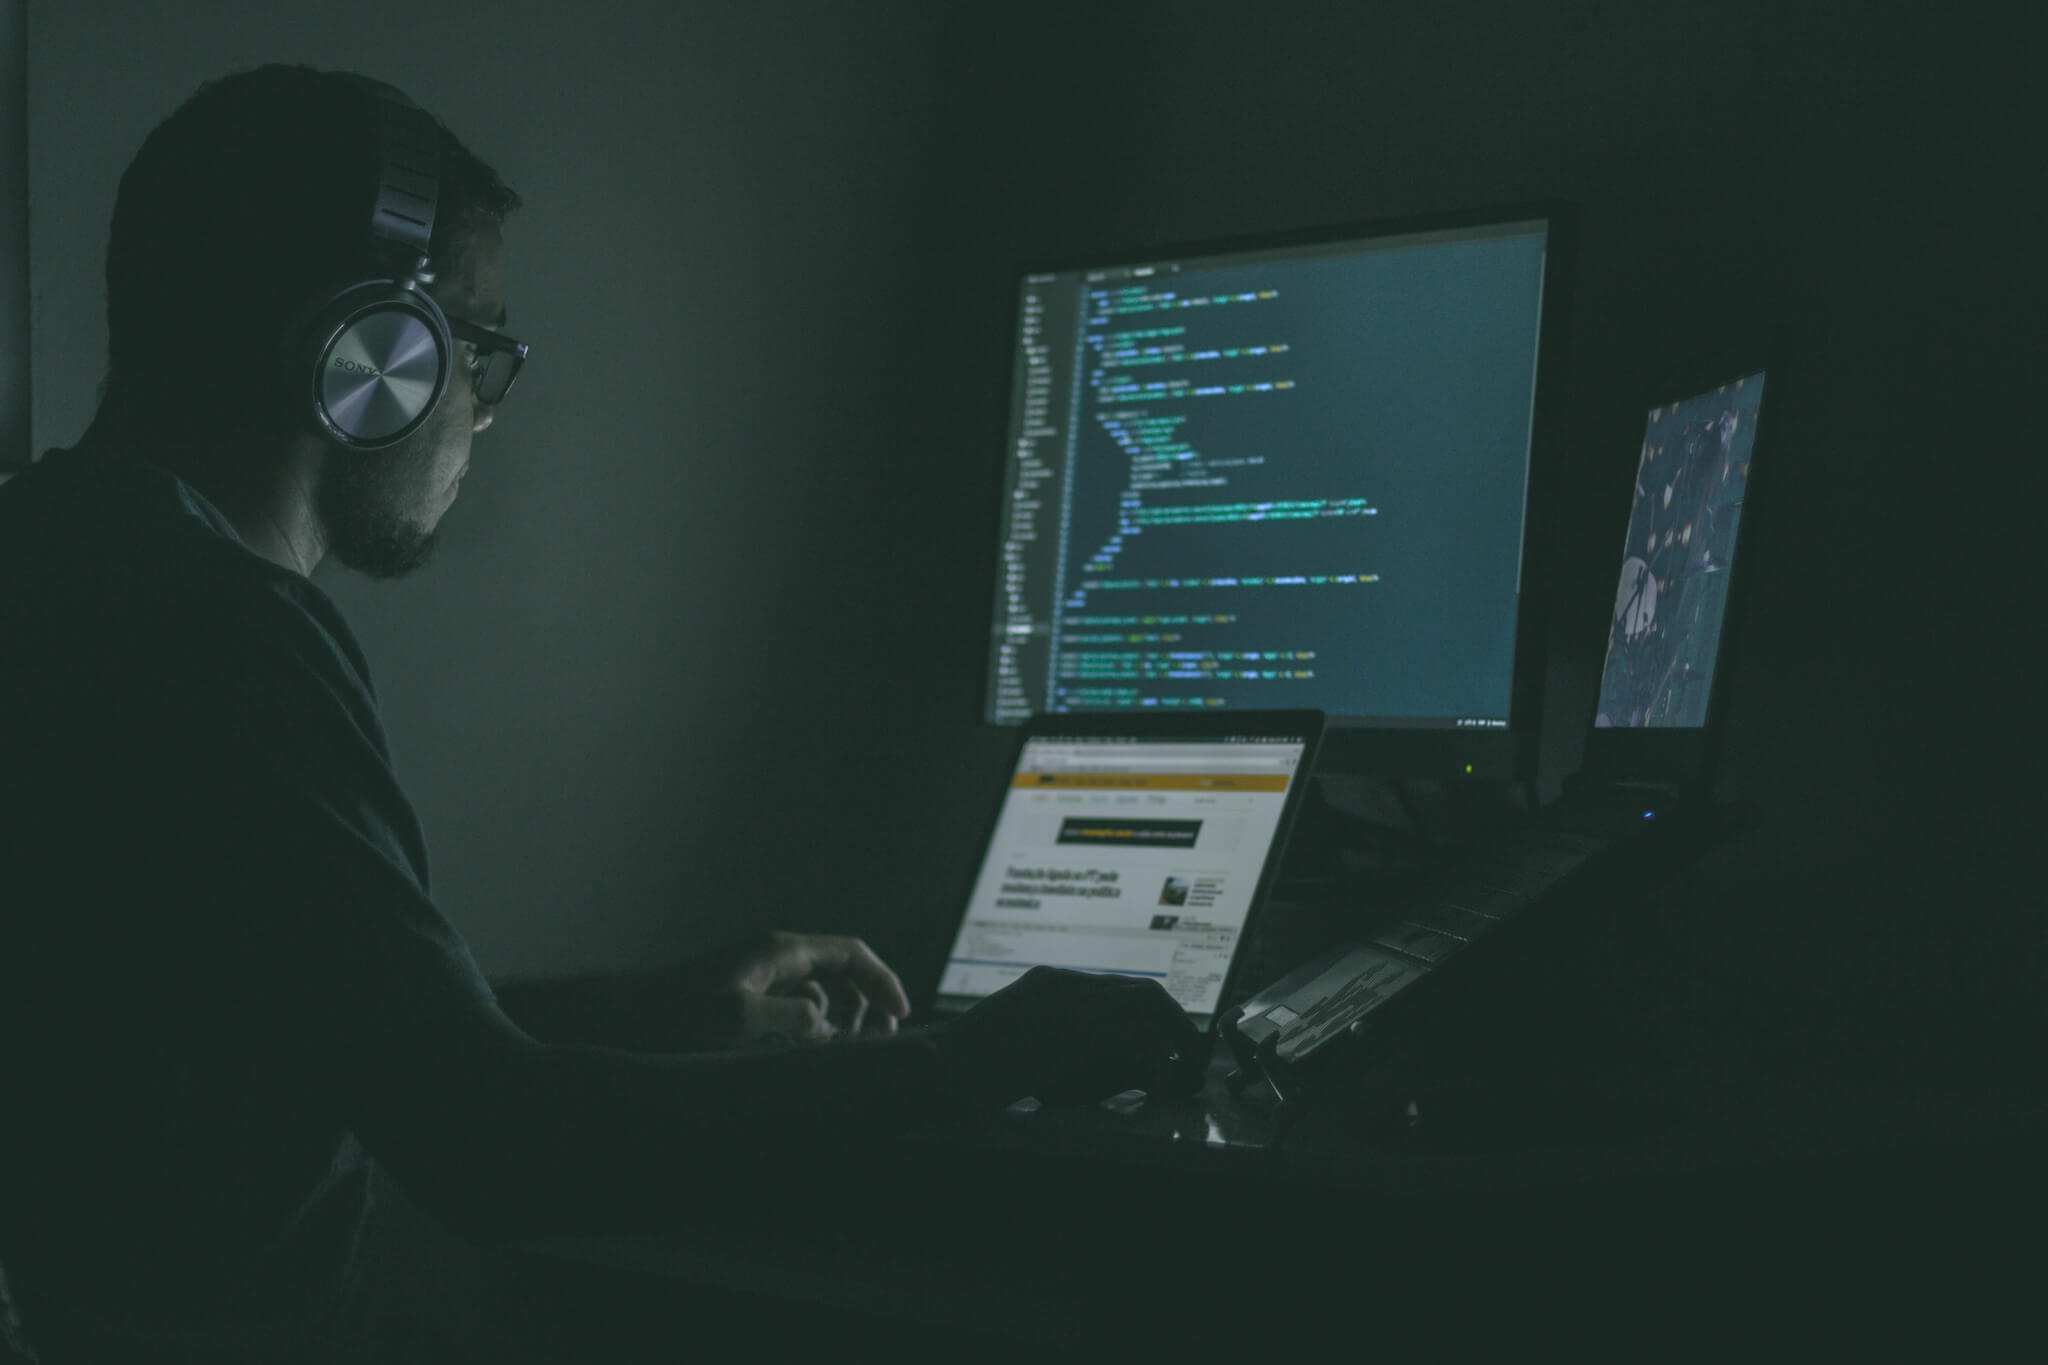 Become an ethical hacker today with this course bundle